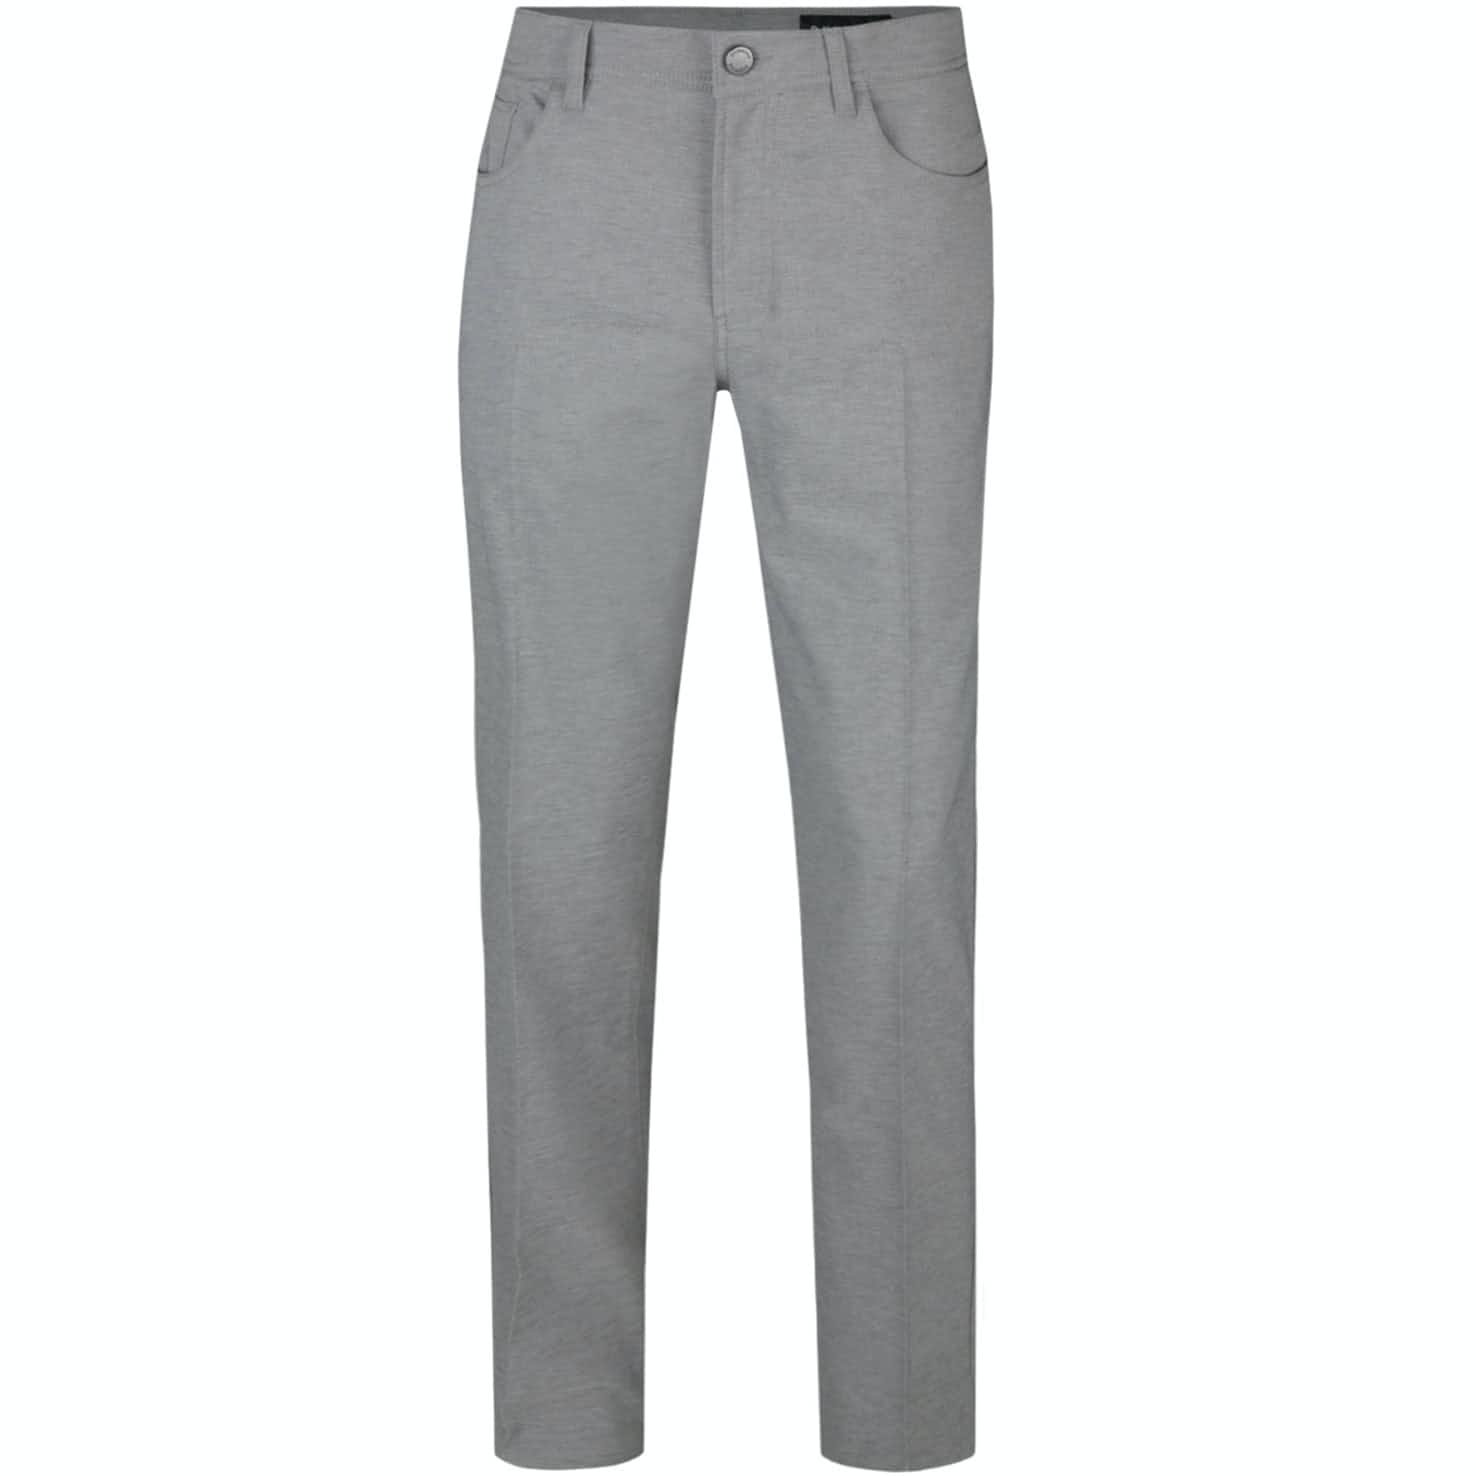 Heathered Five Pocket Pants Grey - 2018